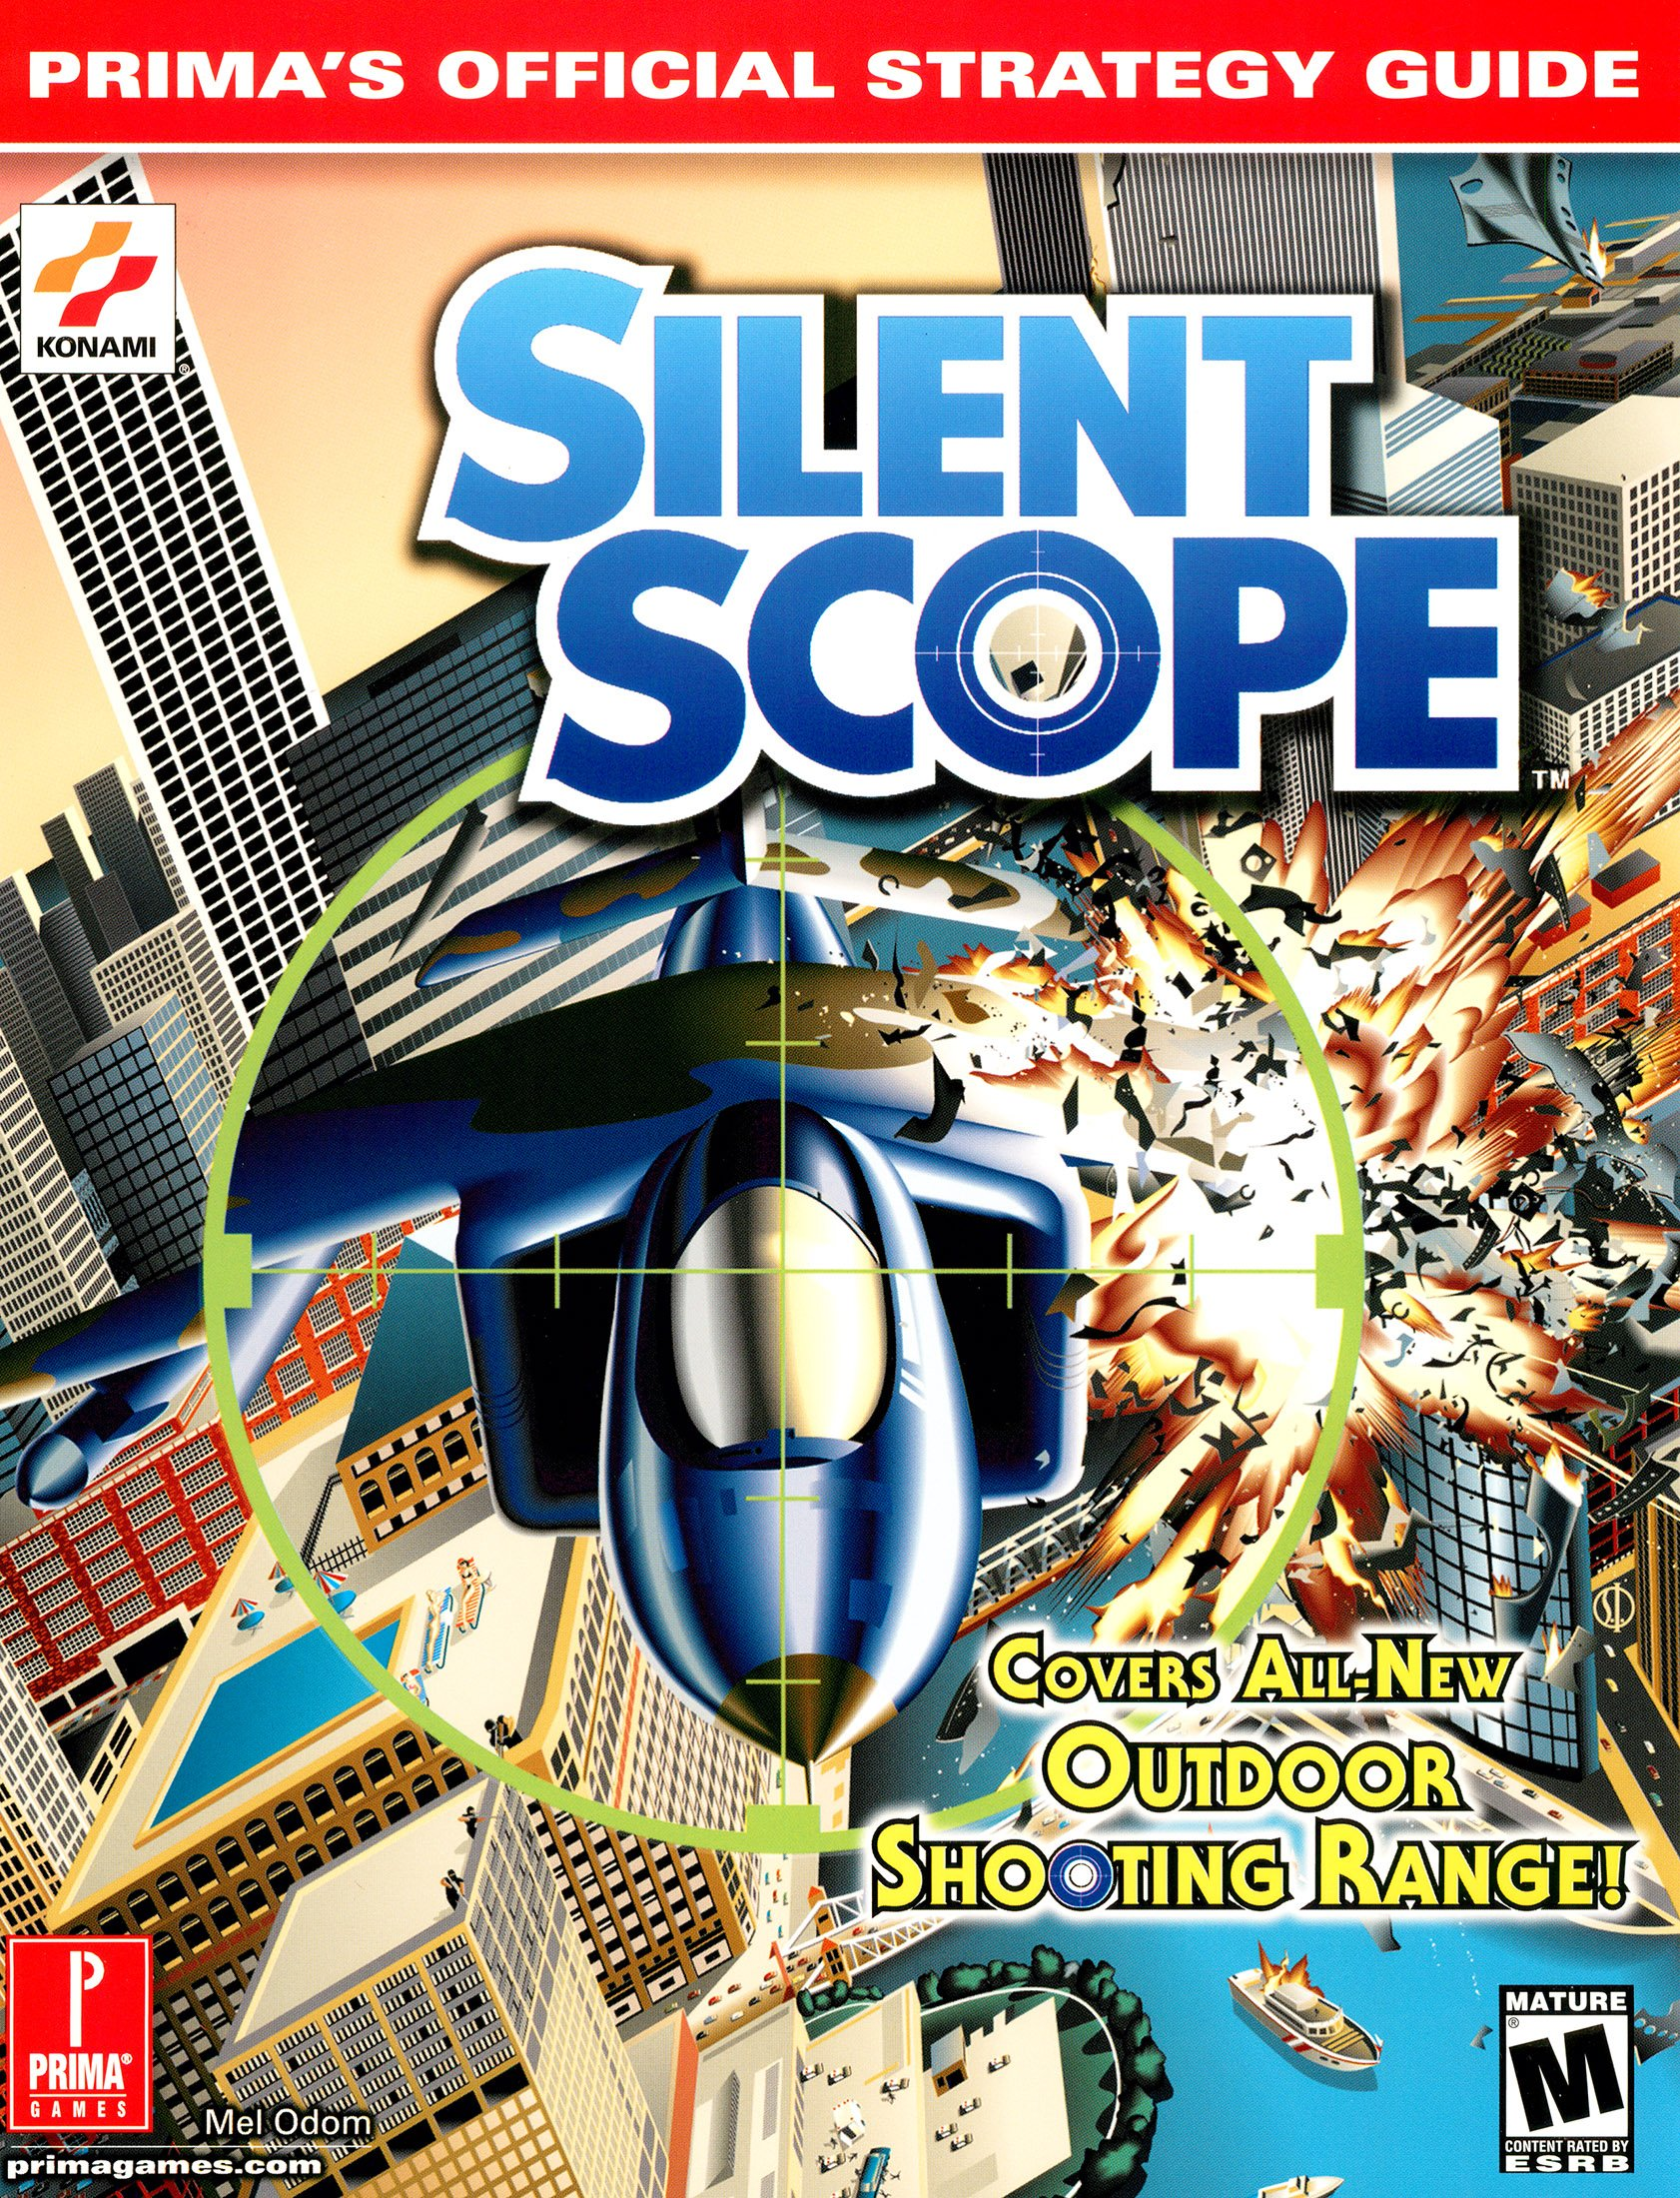 Silent Scope - Prima's Official Strategy Guide